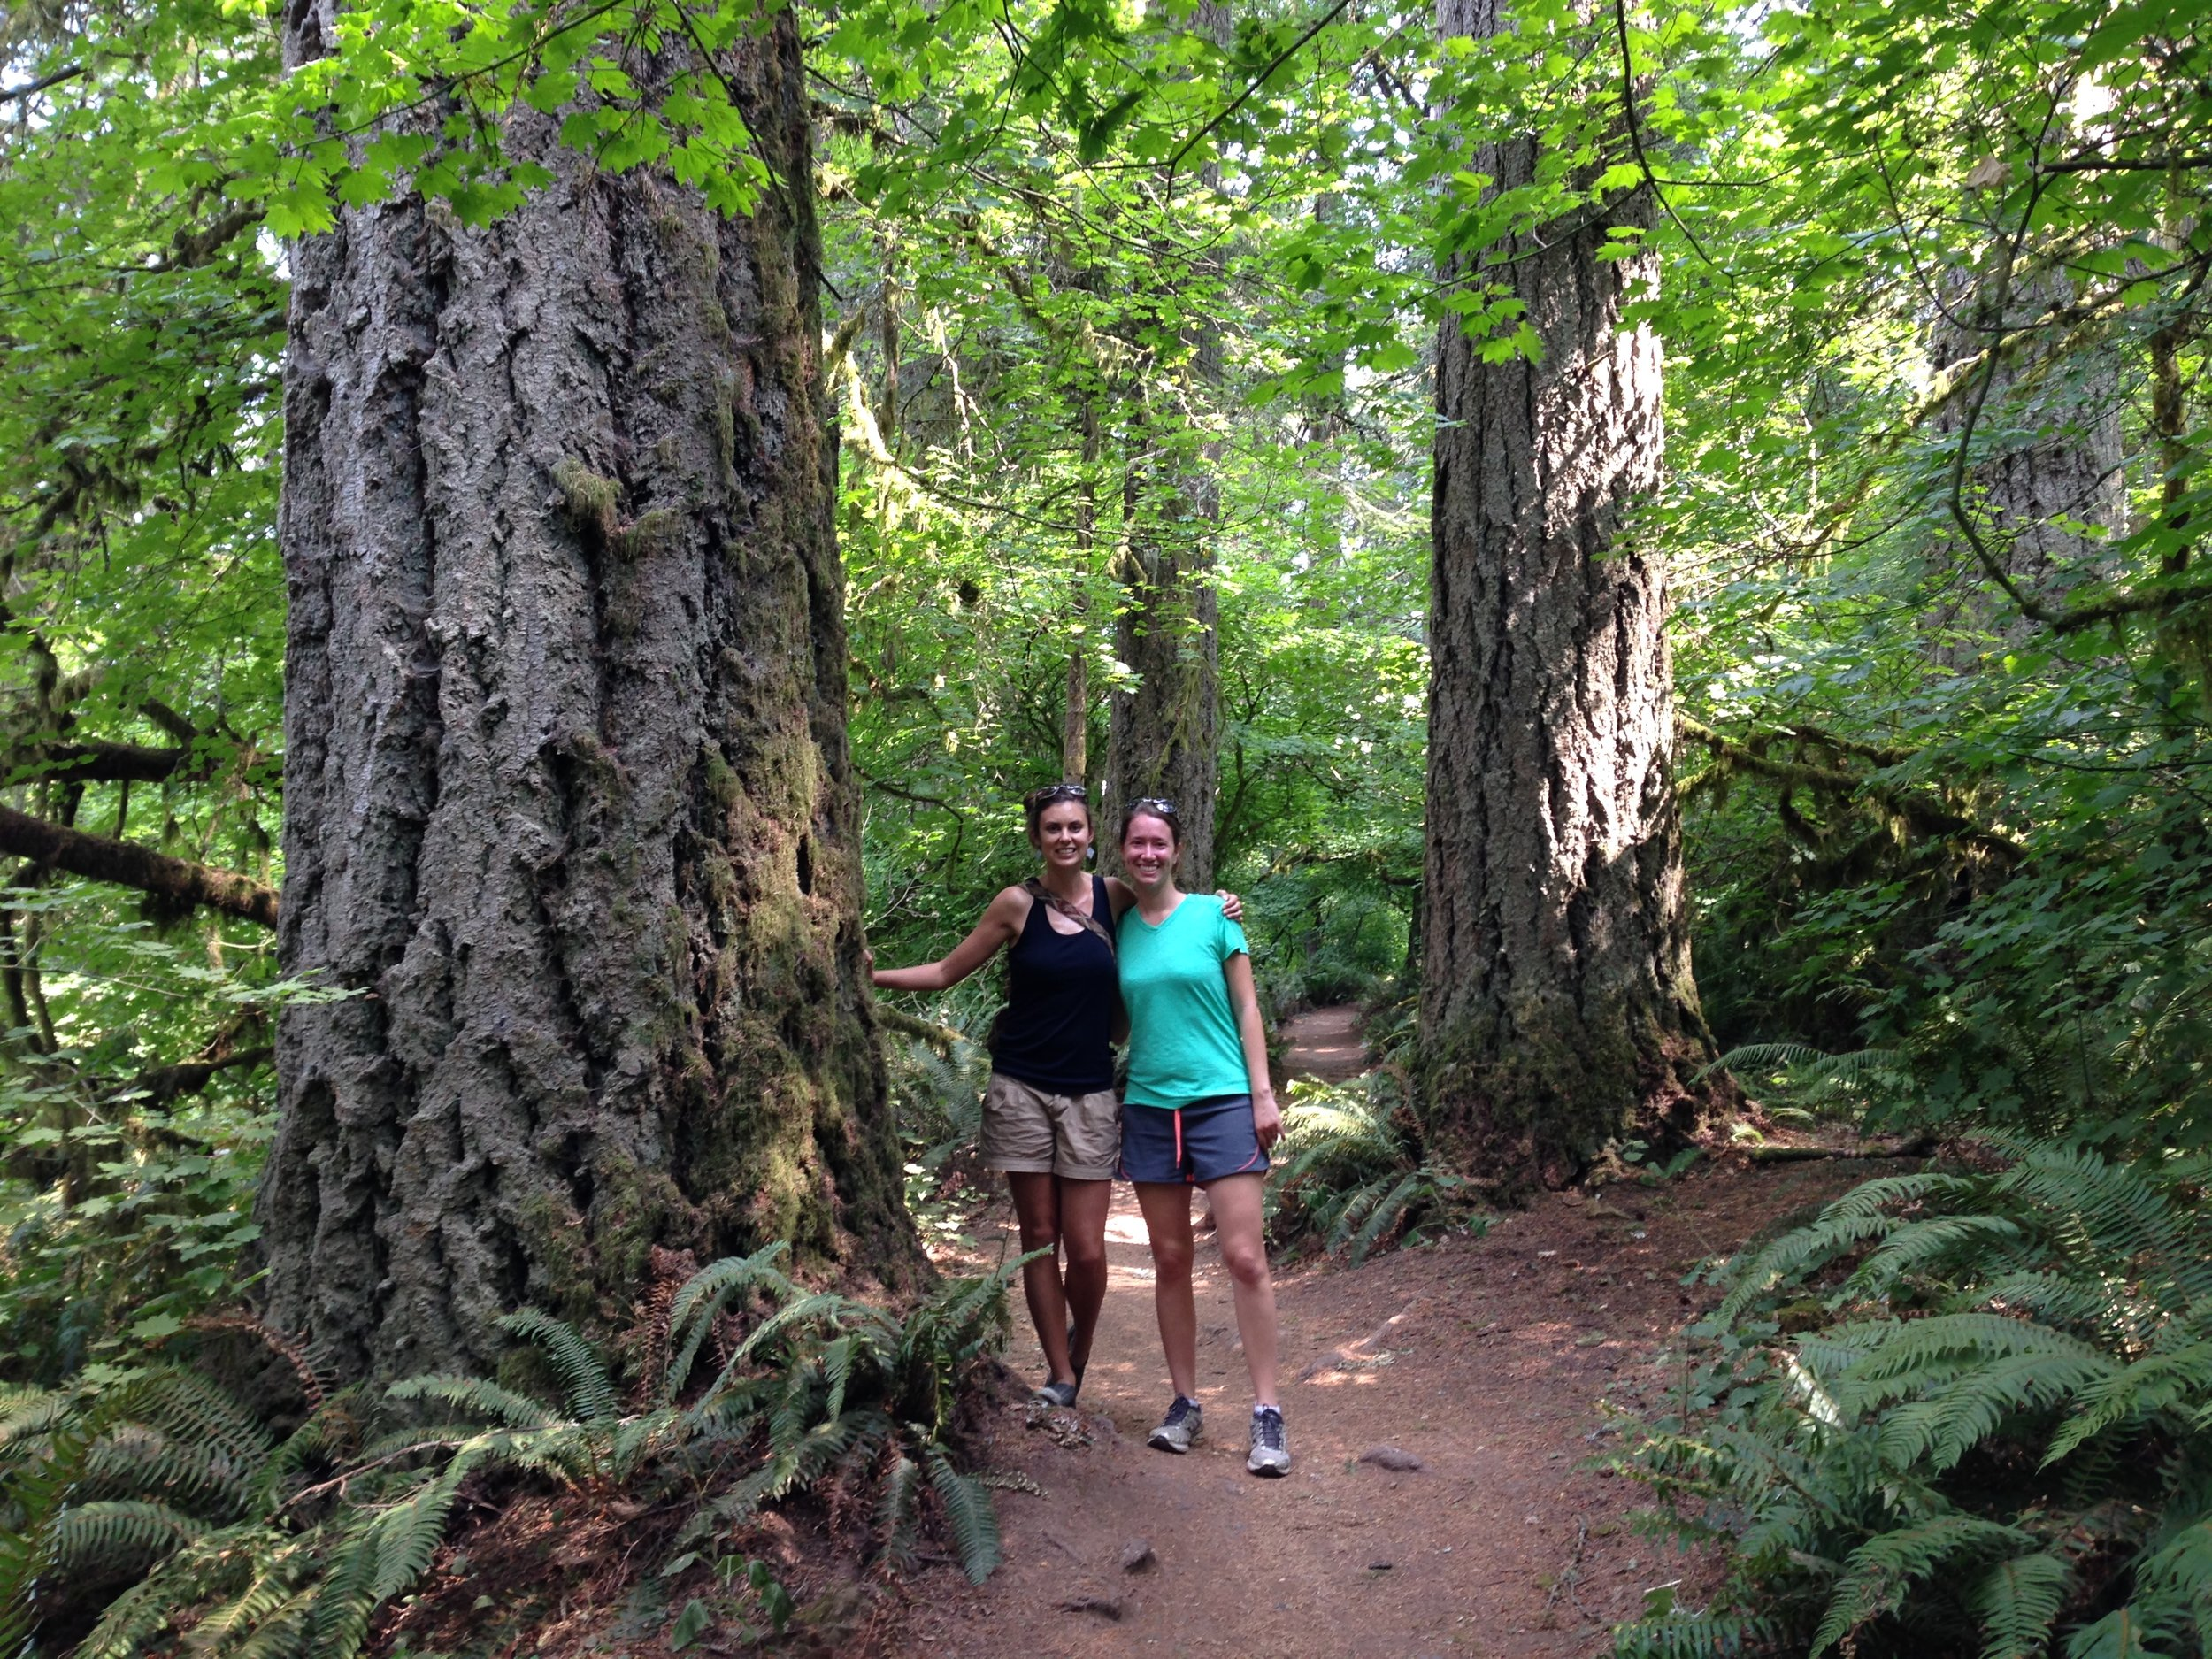 Erin Deasy (left) is my friend who is always up for an outdoor adventure, like this 2015 hike in Eugene, Oregon.